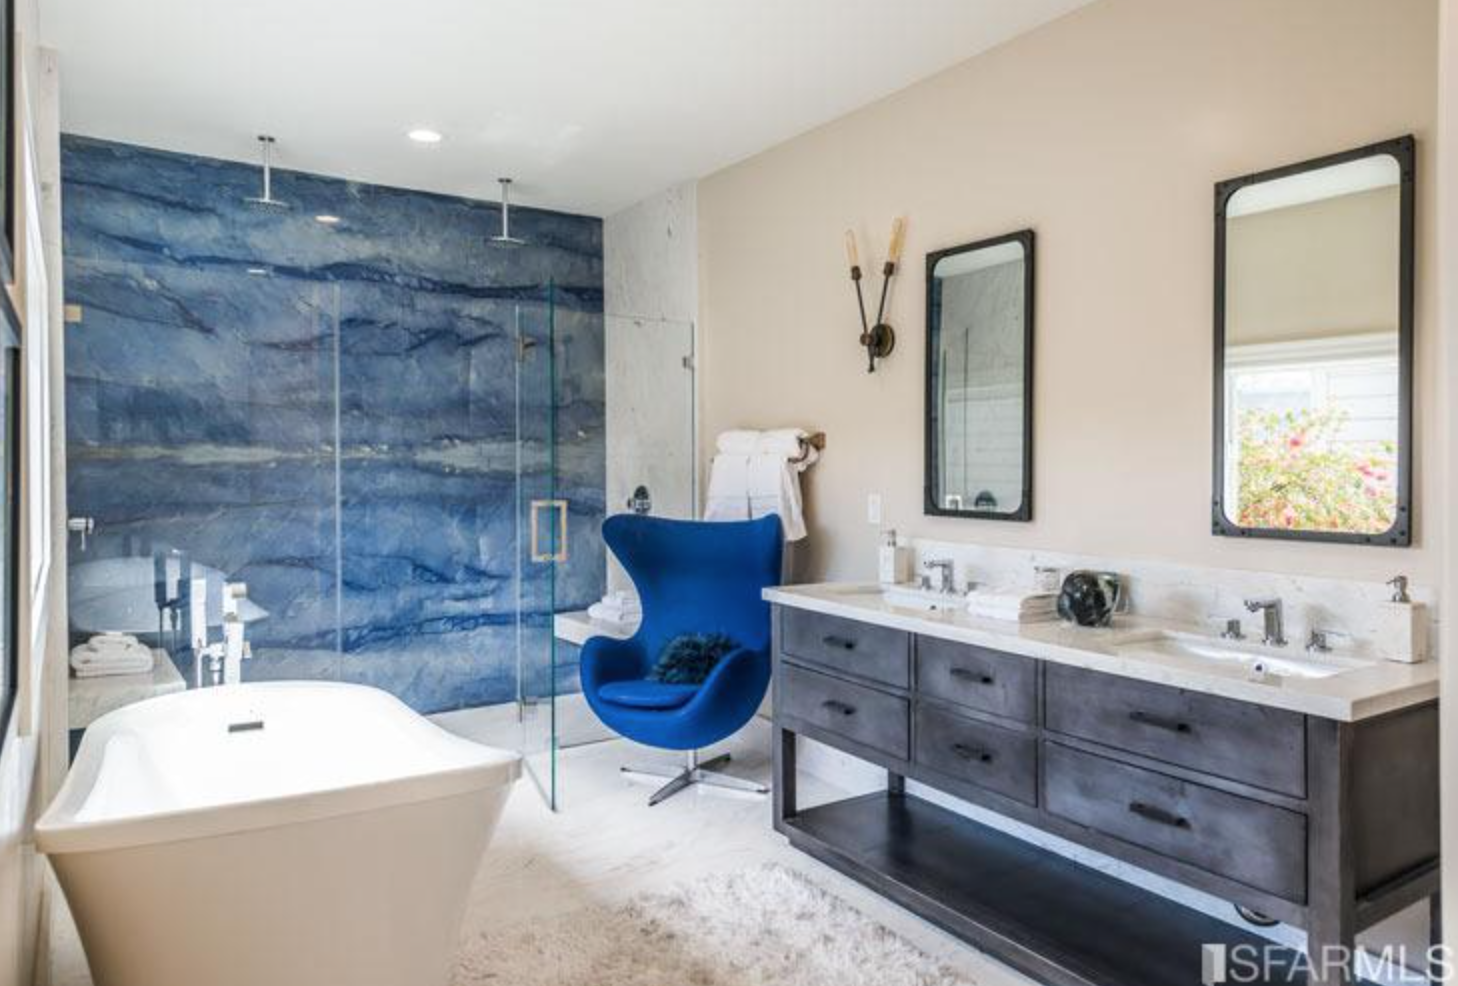 Agate blue wall in shower. | House ideas | Pinterest | Blue walls ...